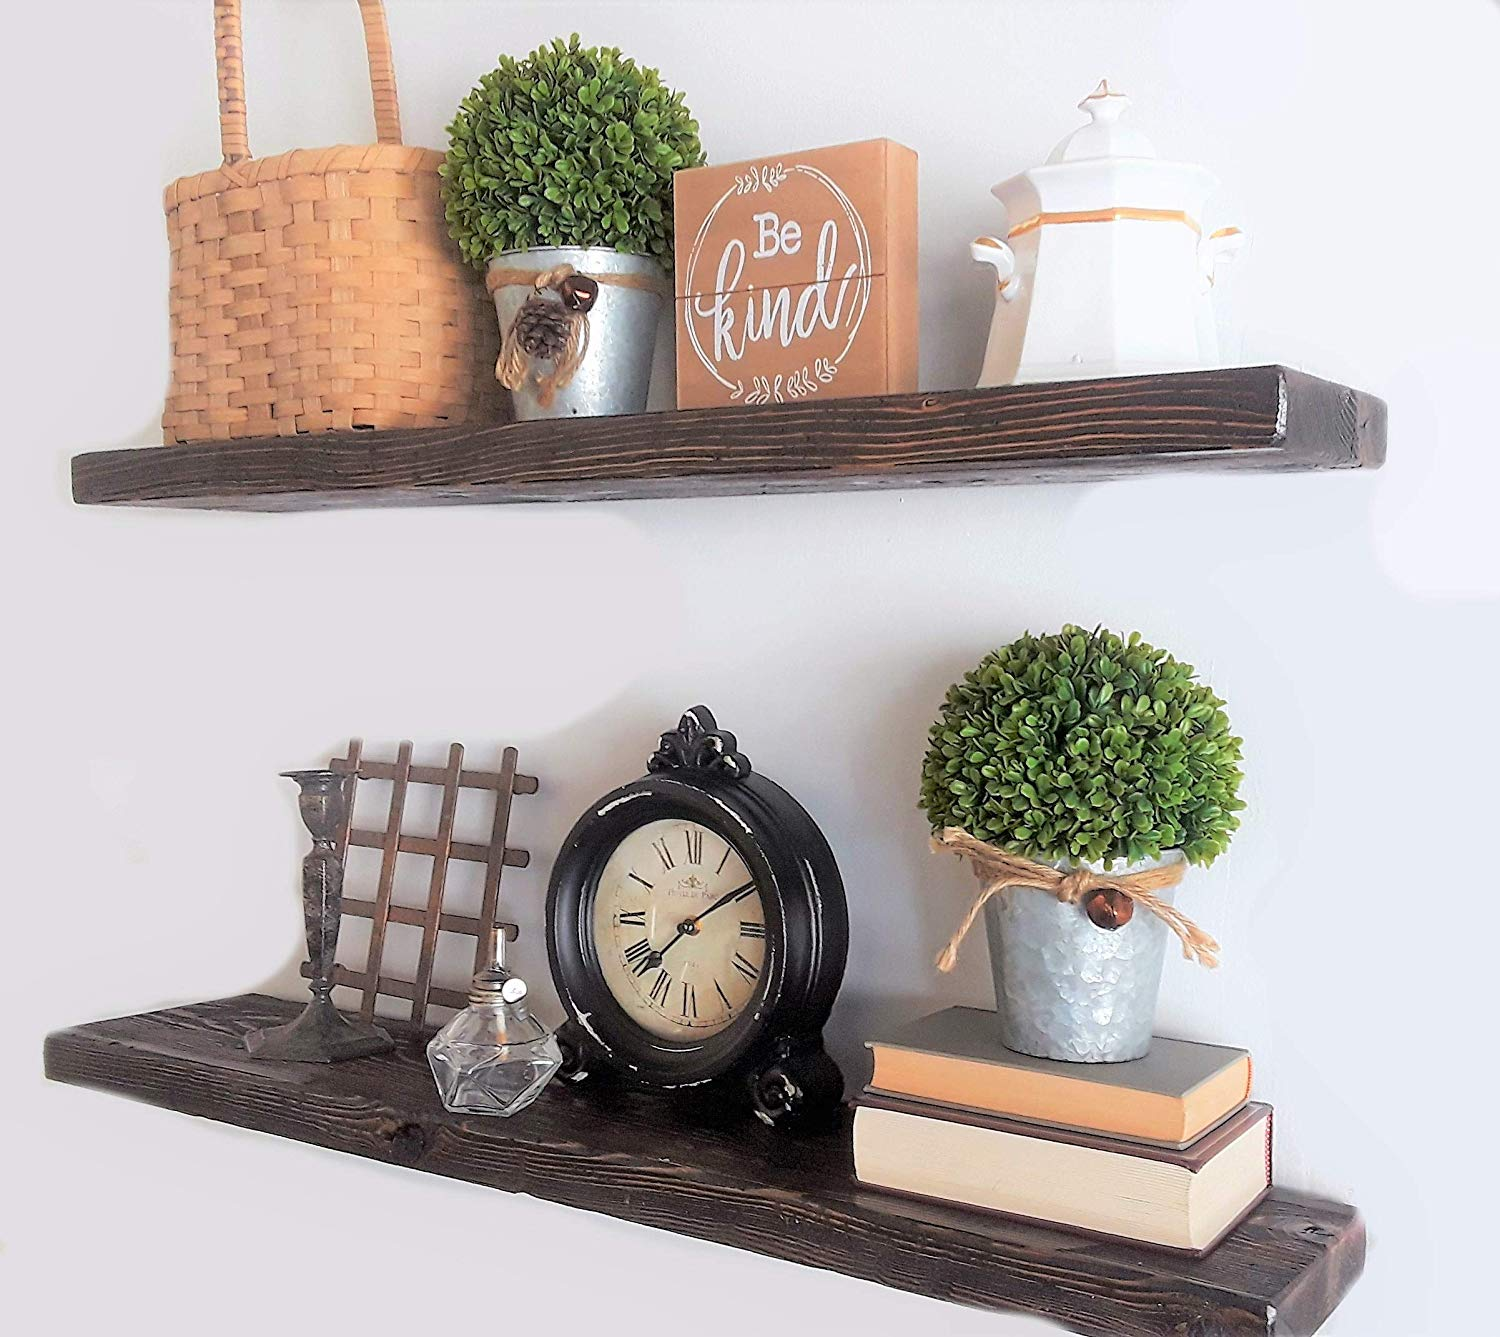 ella max rustic wood floating shelves set dark with hidden brackets walnut inches home kitchen shelf board racks and railroad tie mantle wooden fire glass screwfix little bathroom